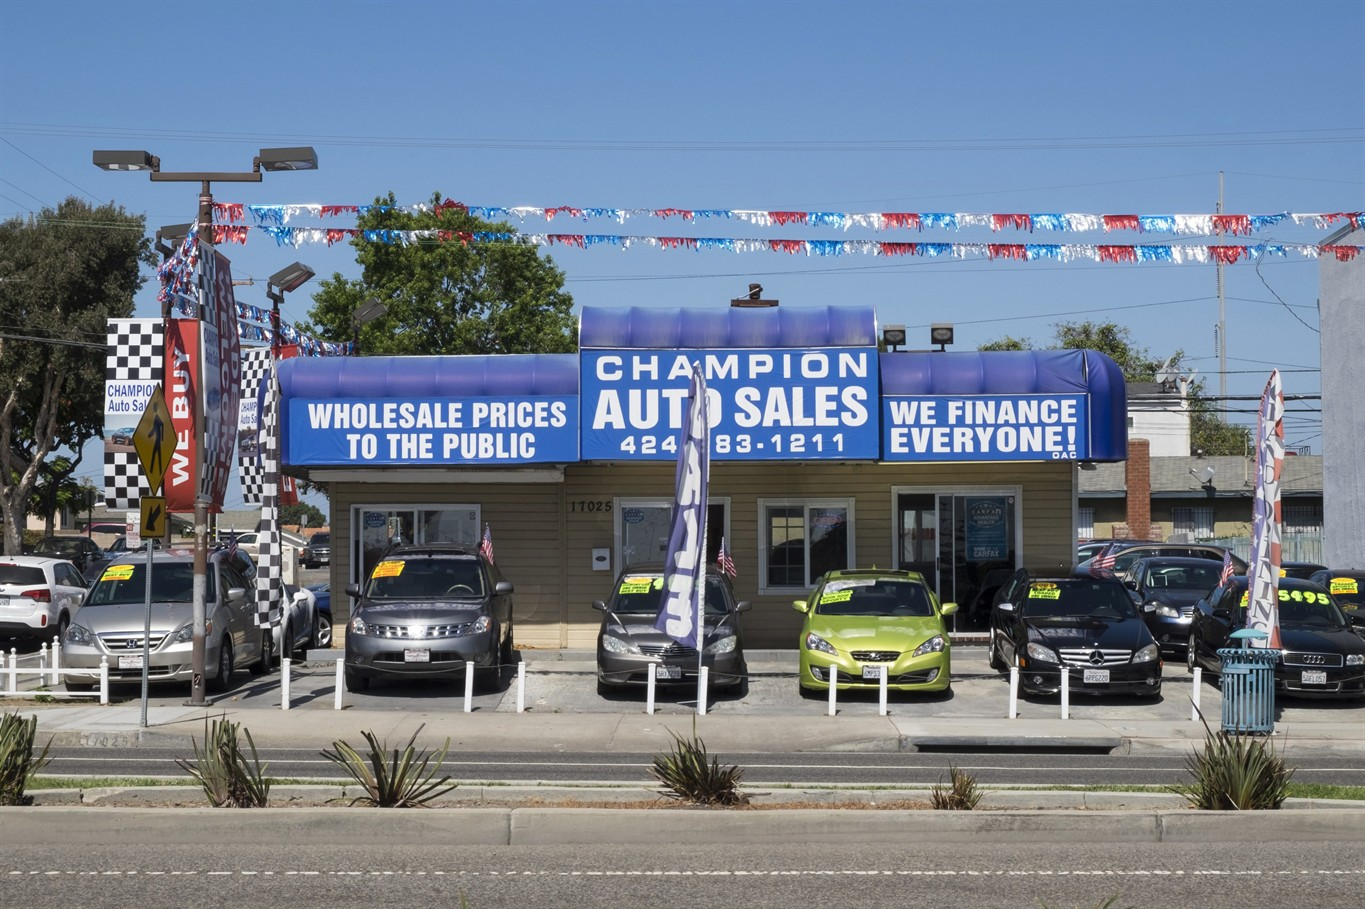 Used Car Lot >> What You Need To Know About Independent Used Car Lots 660 News